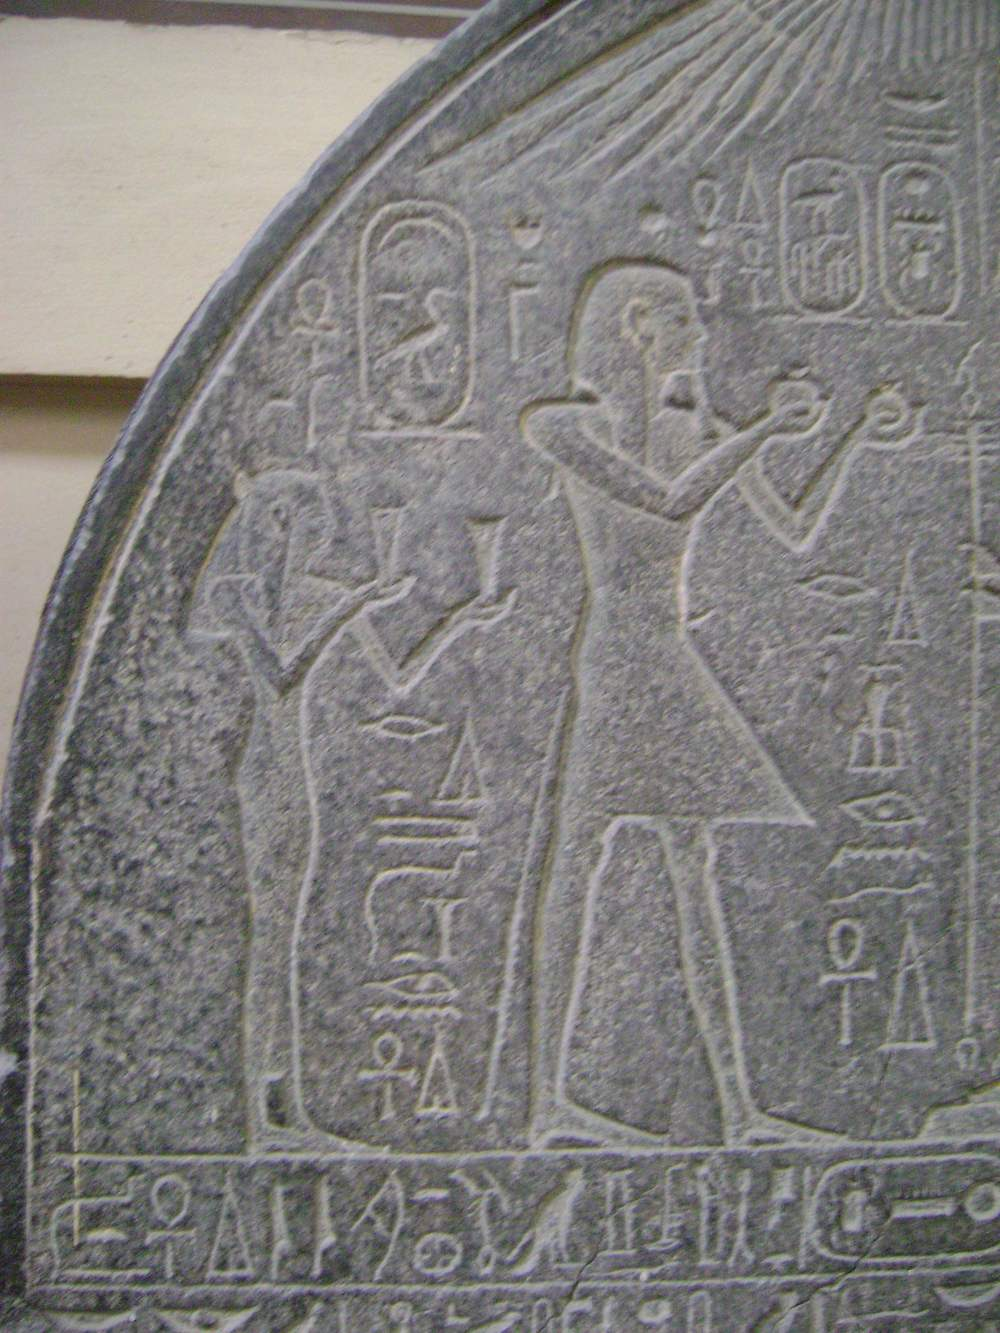 satiah-stela-closeup.jpg